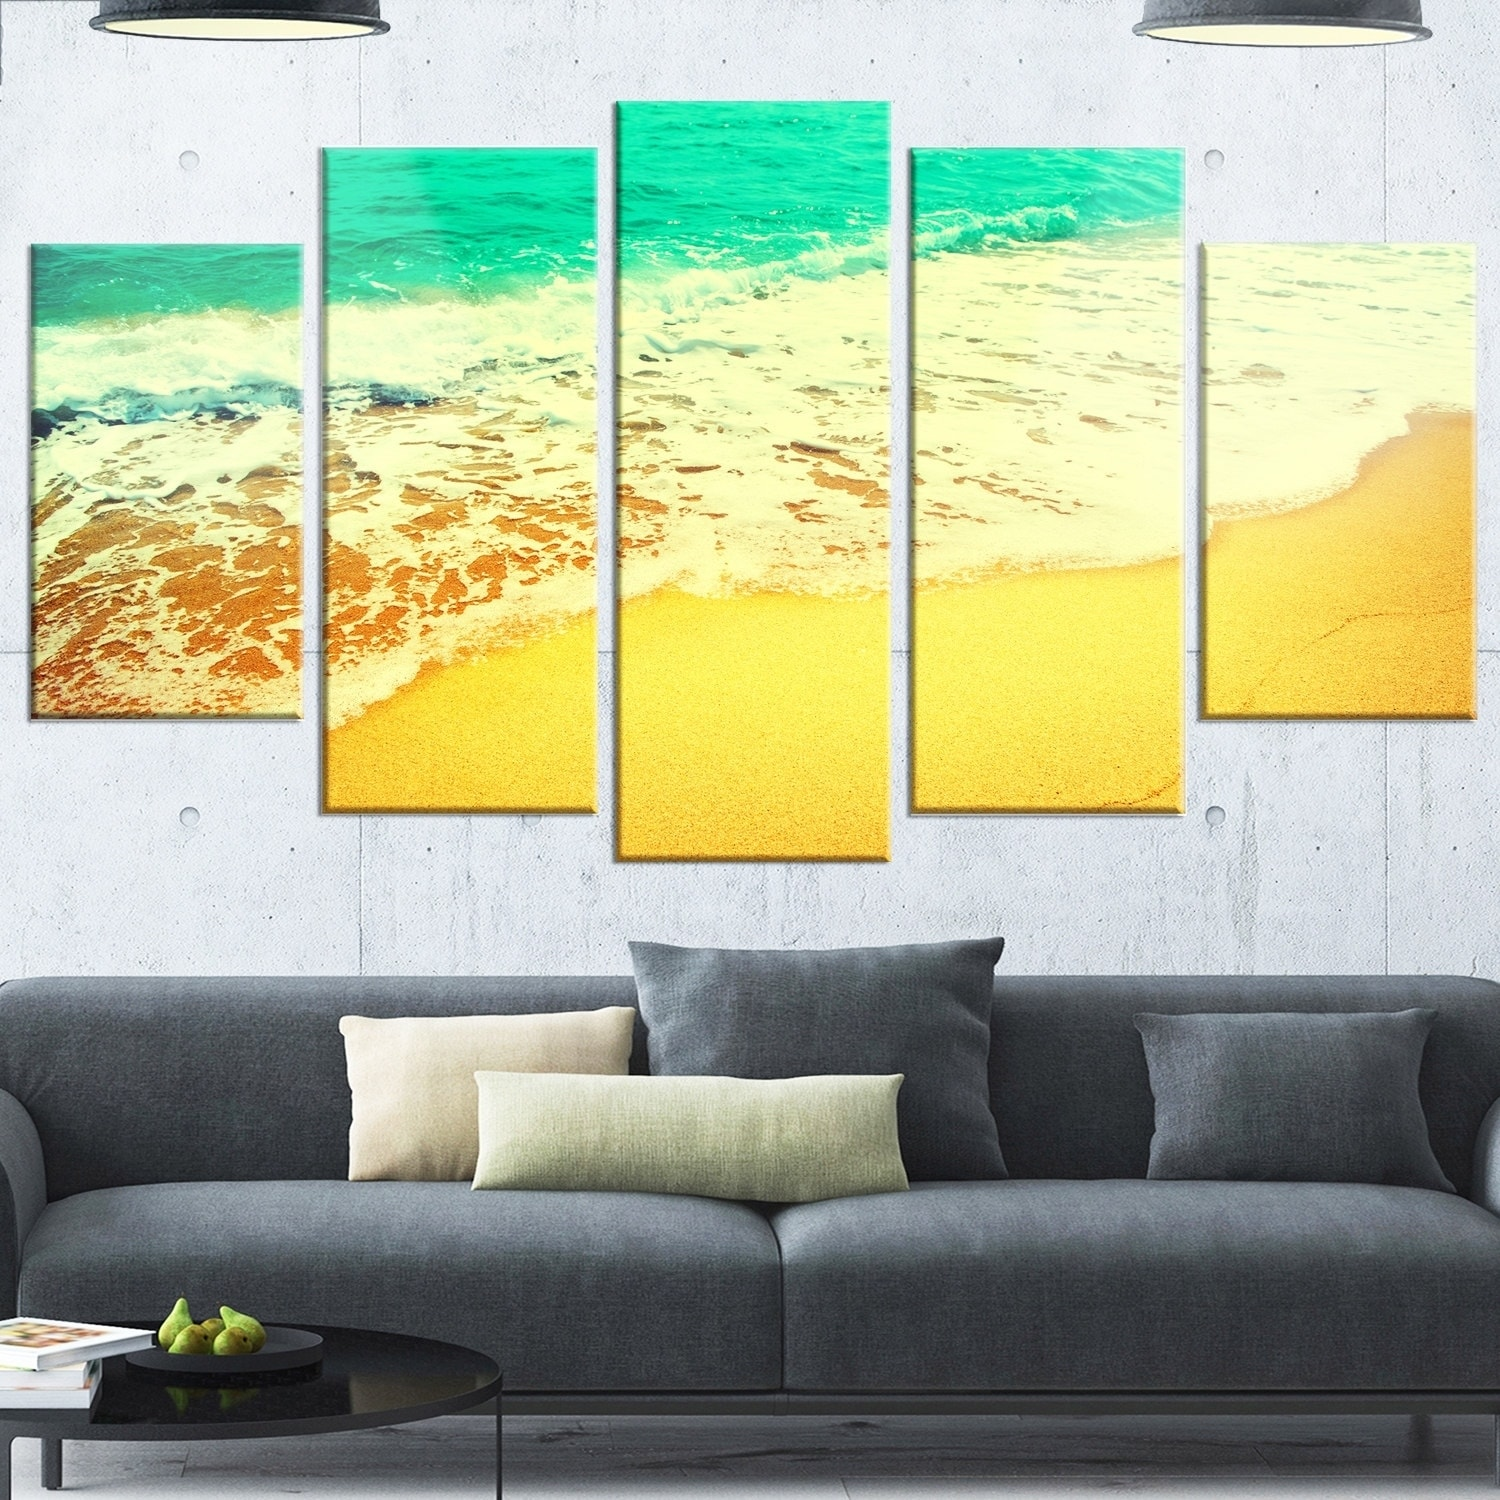 Excellent Tempered Glass Wall Decor Images - The Wall Art ...